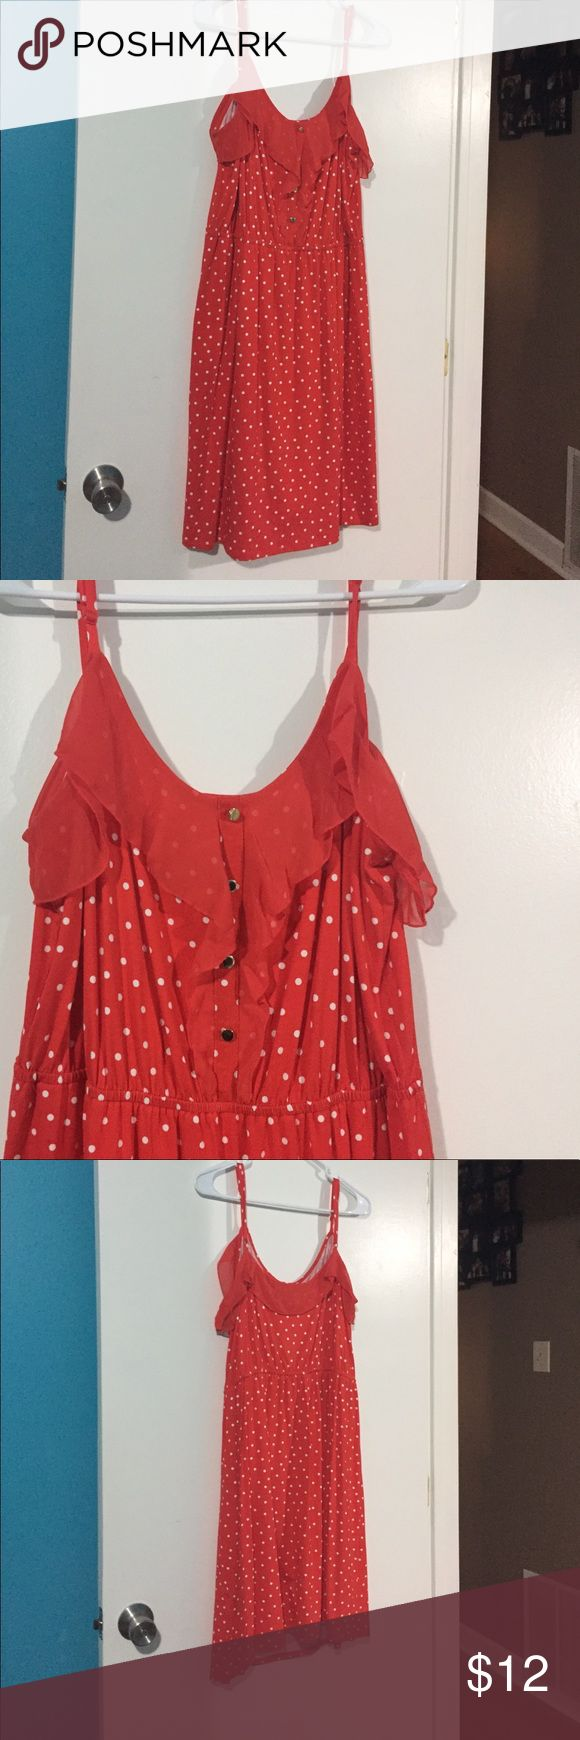 Red polka dot dress Super light, casual summer dress, perfect for throwing over a bathing suit or wear to dinner. Wore once. Elle Dresses Midi